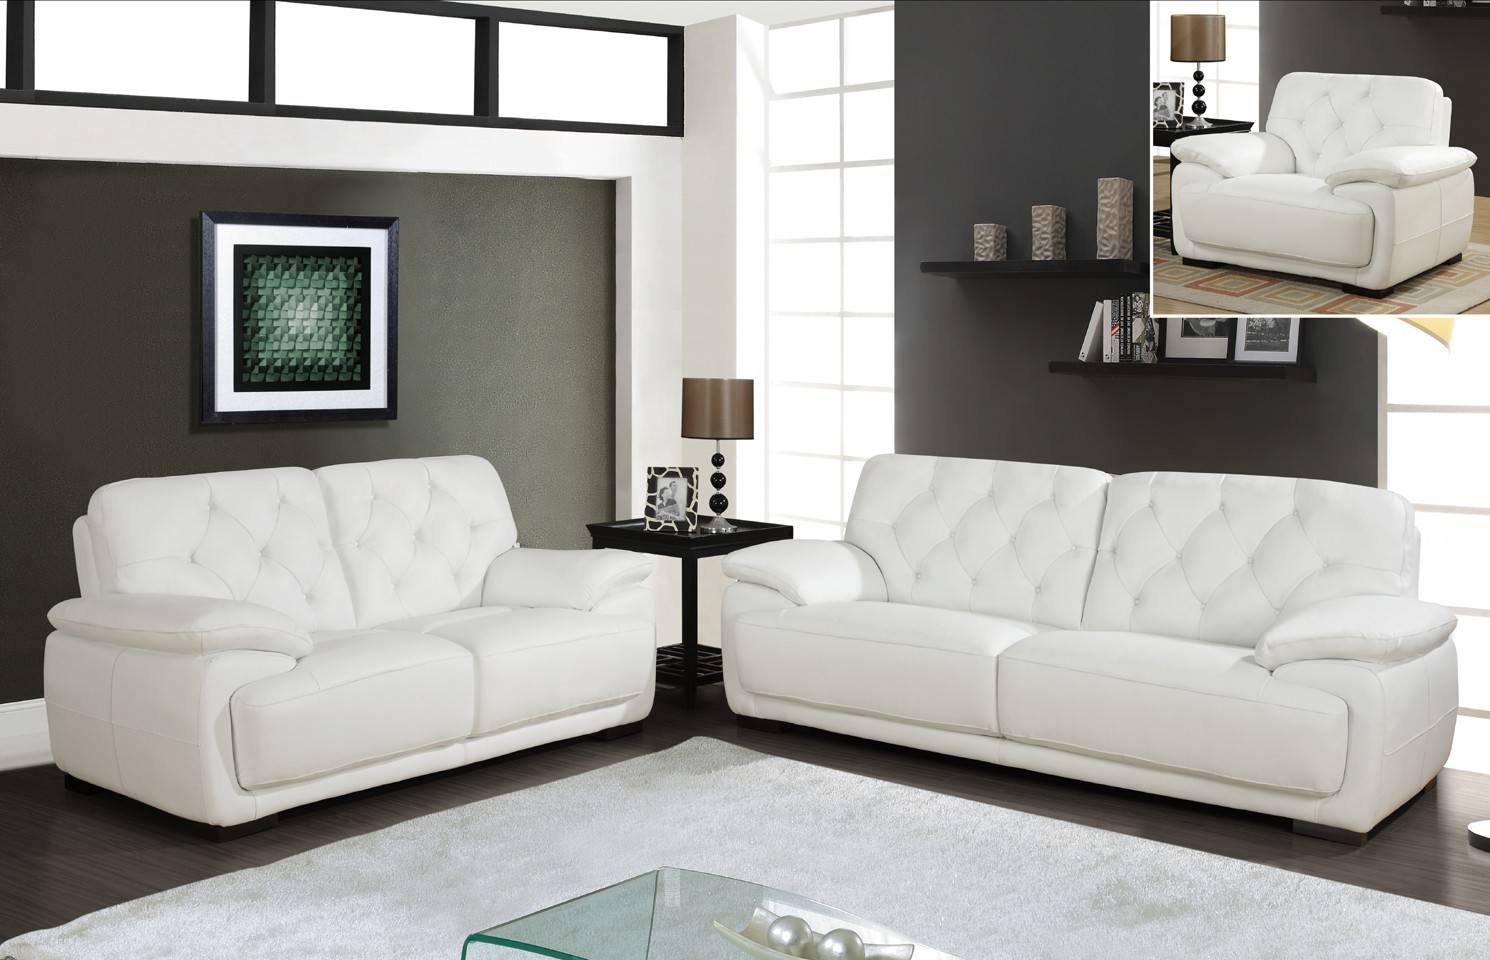 Sofas Center : Maxresdefault Leather Whitea Amazing Images within Off White Leather Sofa and Loveseat (Image 22 of 30)